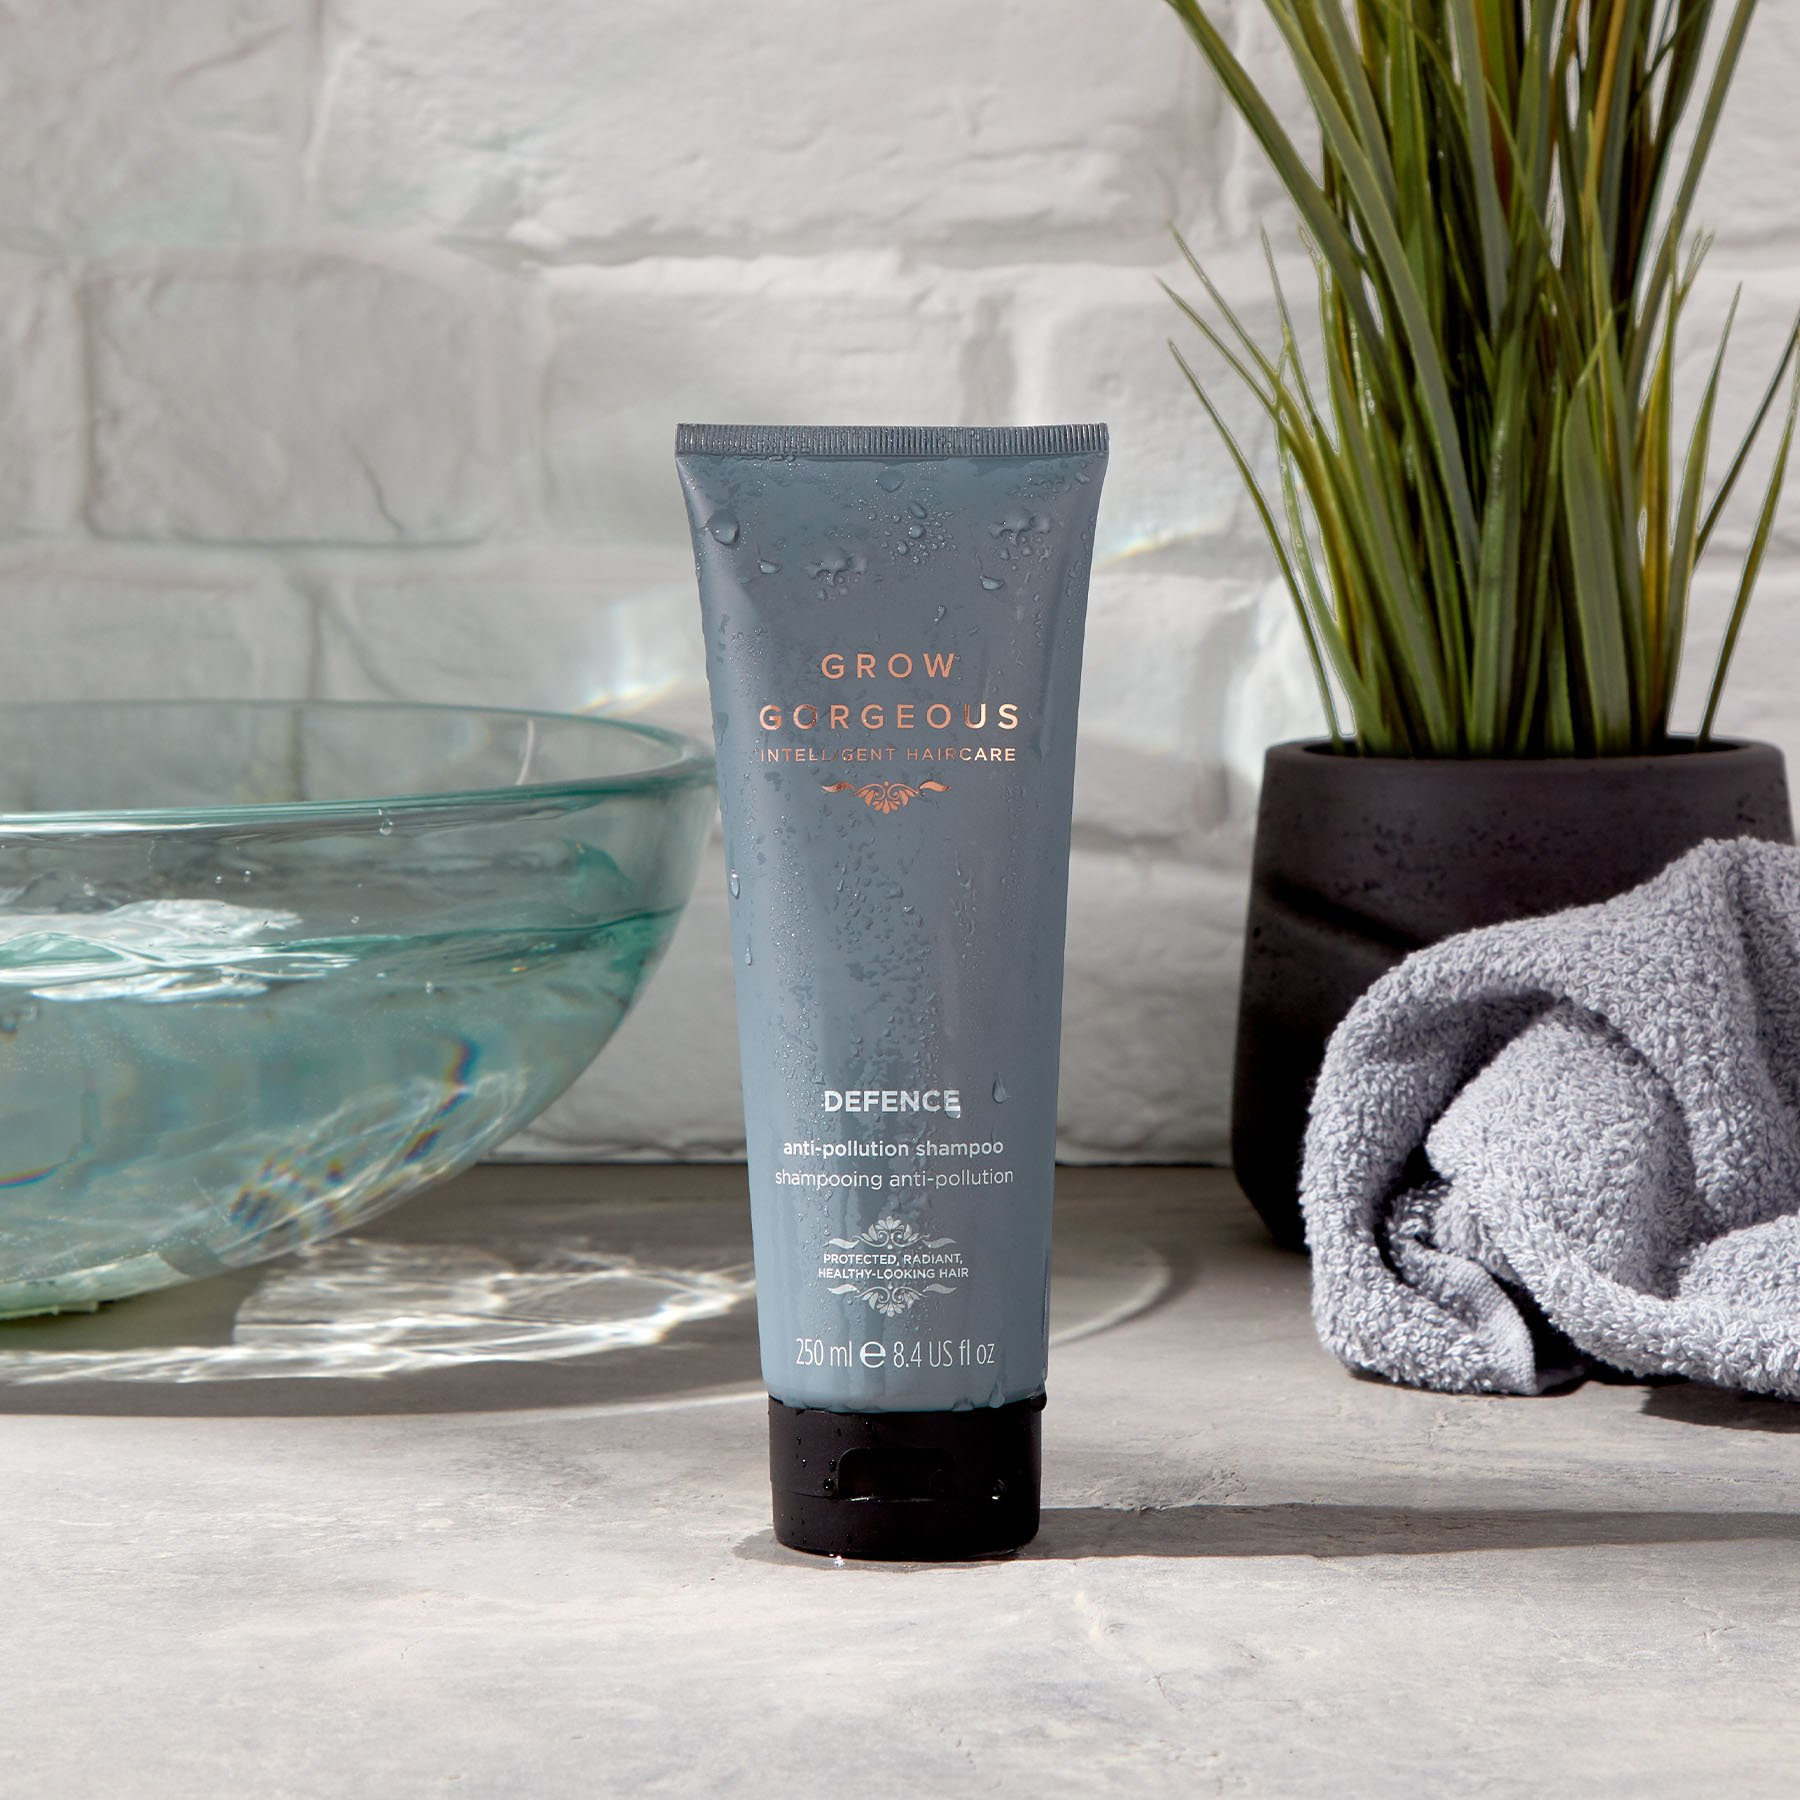 Lifestyle image setting of the Grow Gorgeous shampoo from the Defence range formulated as a shampoo for grease-prone hair.